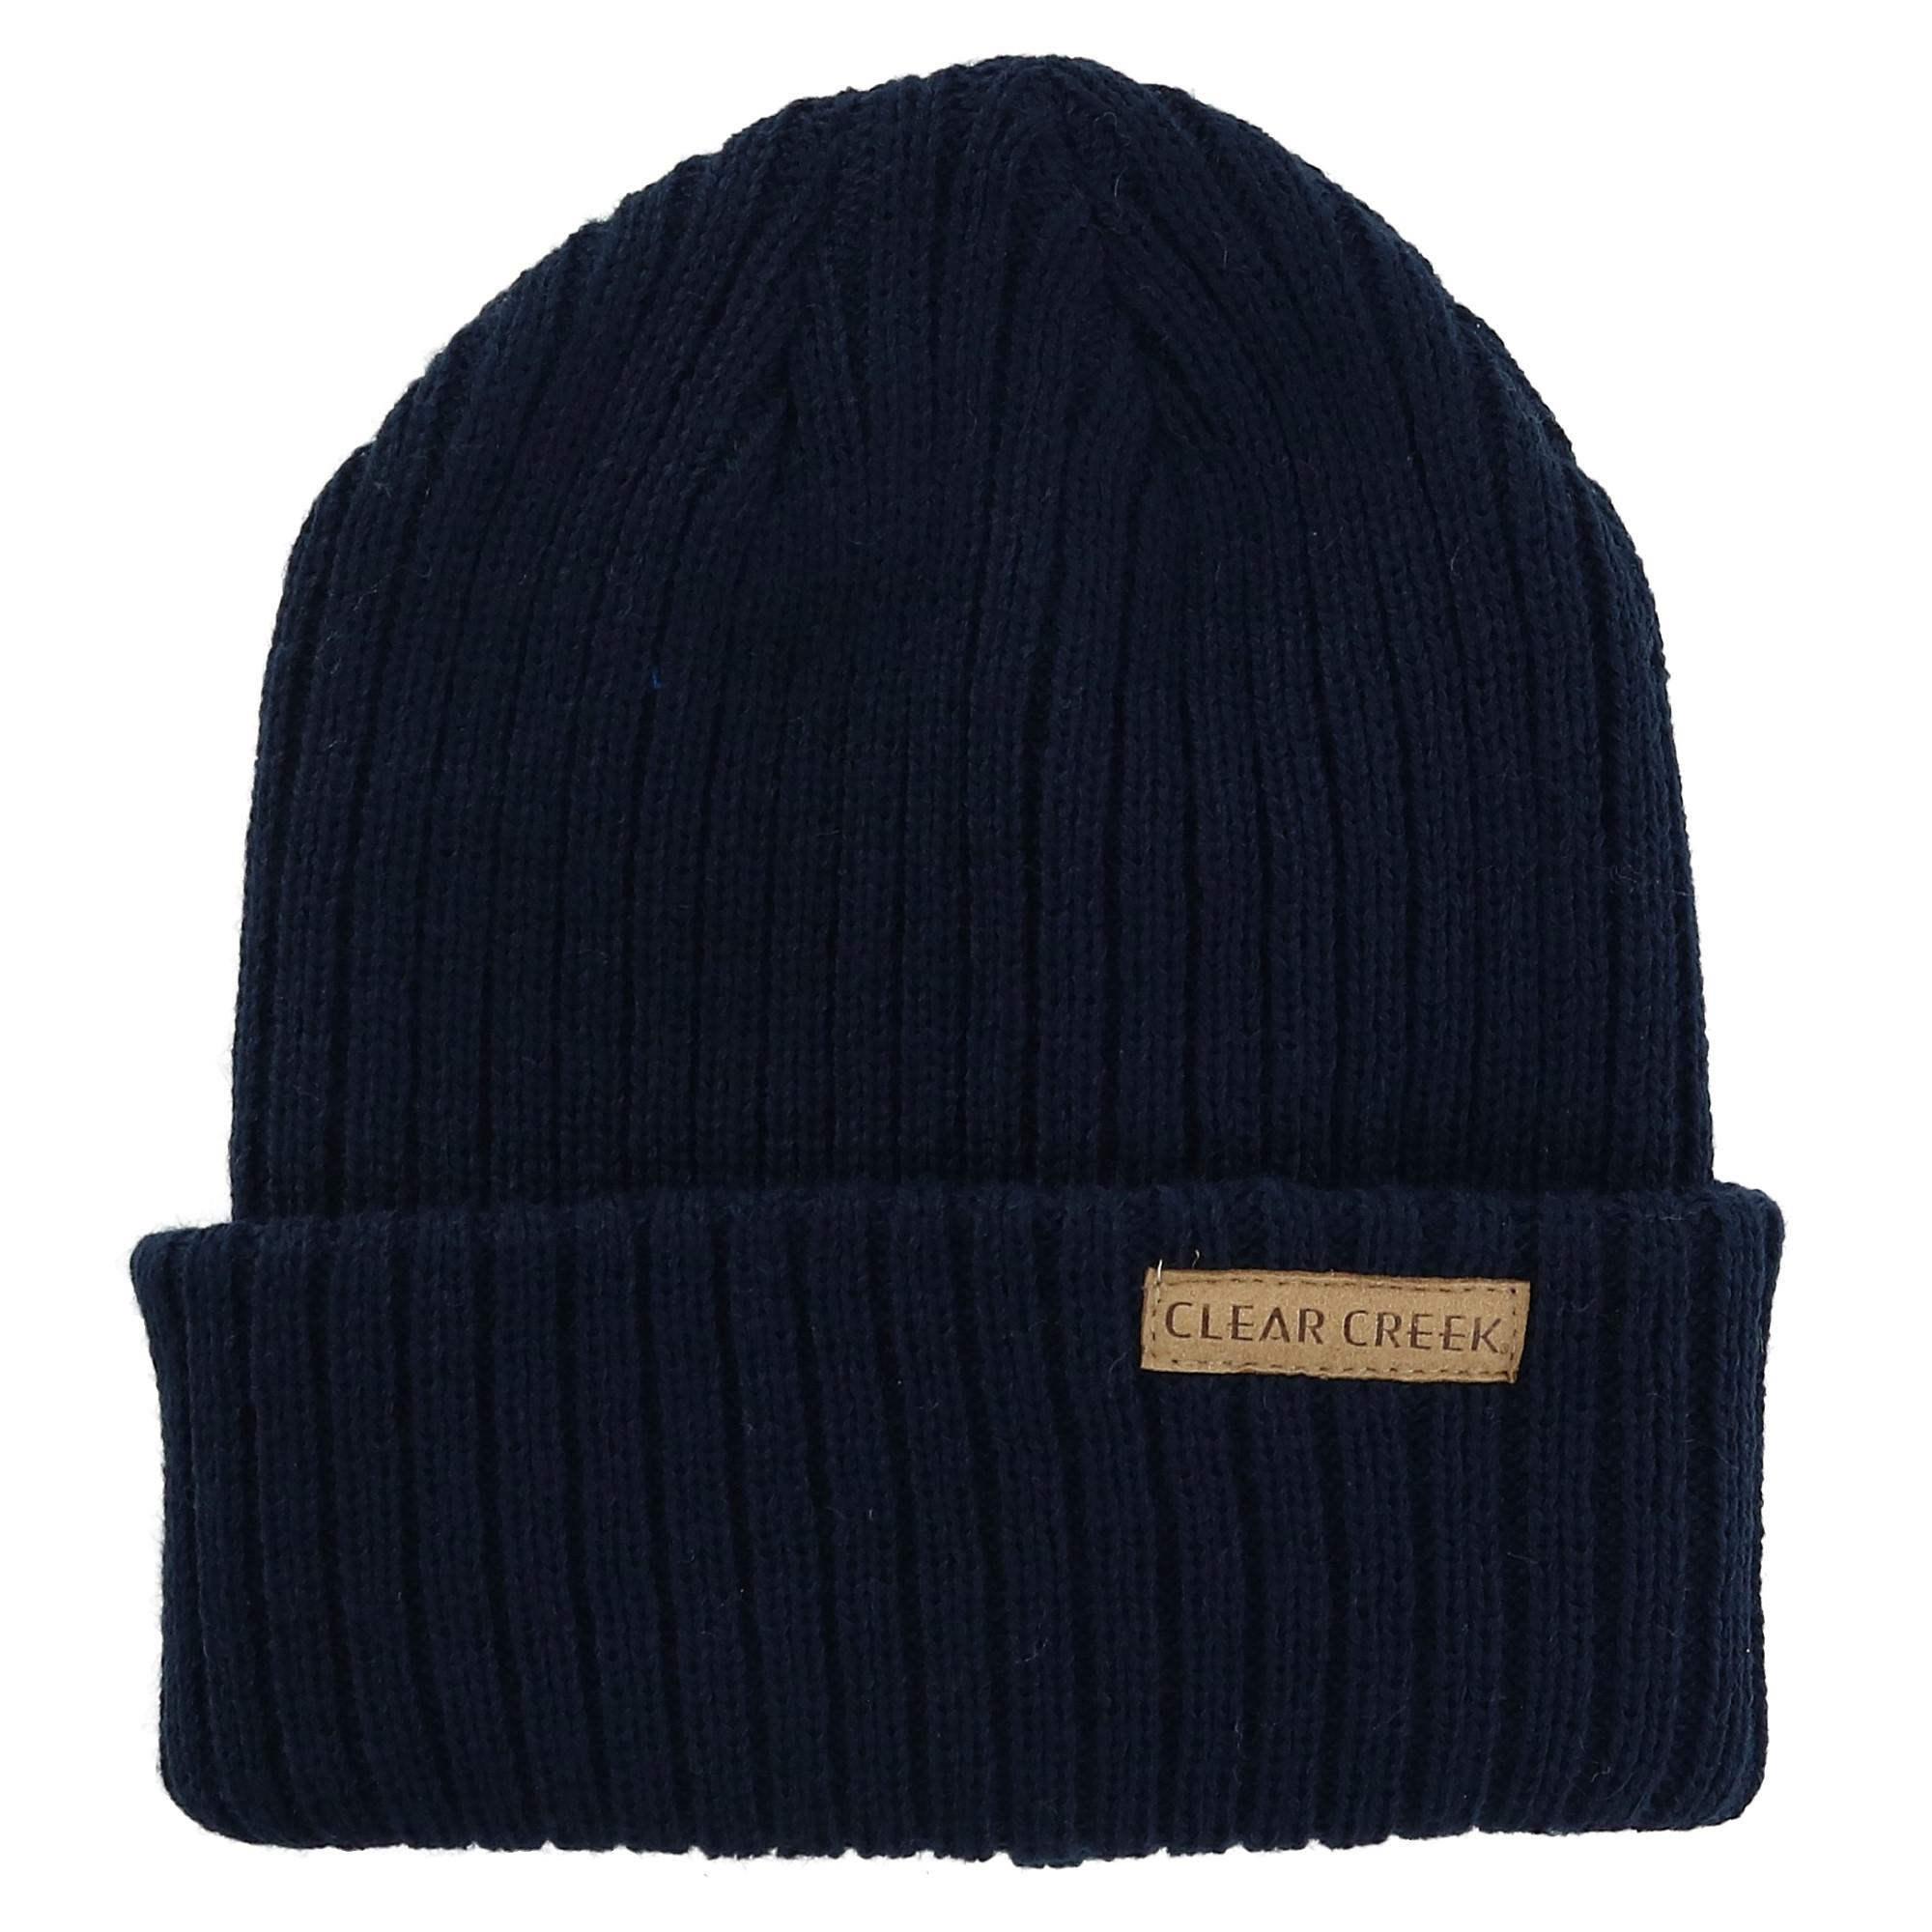 Clear Creek Men's Ribbed Knit Cuff Cap - Navy one size